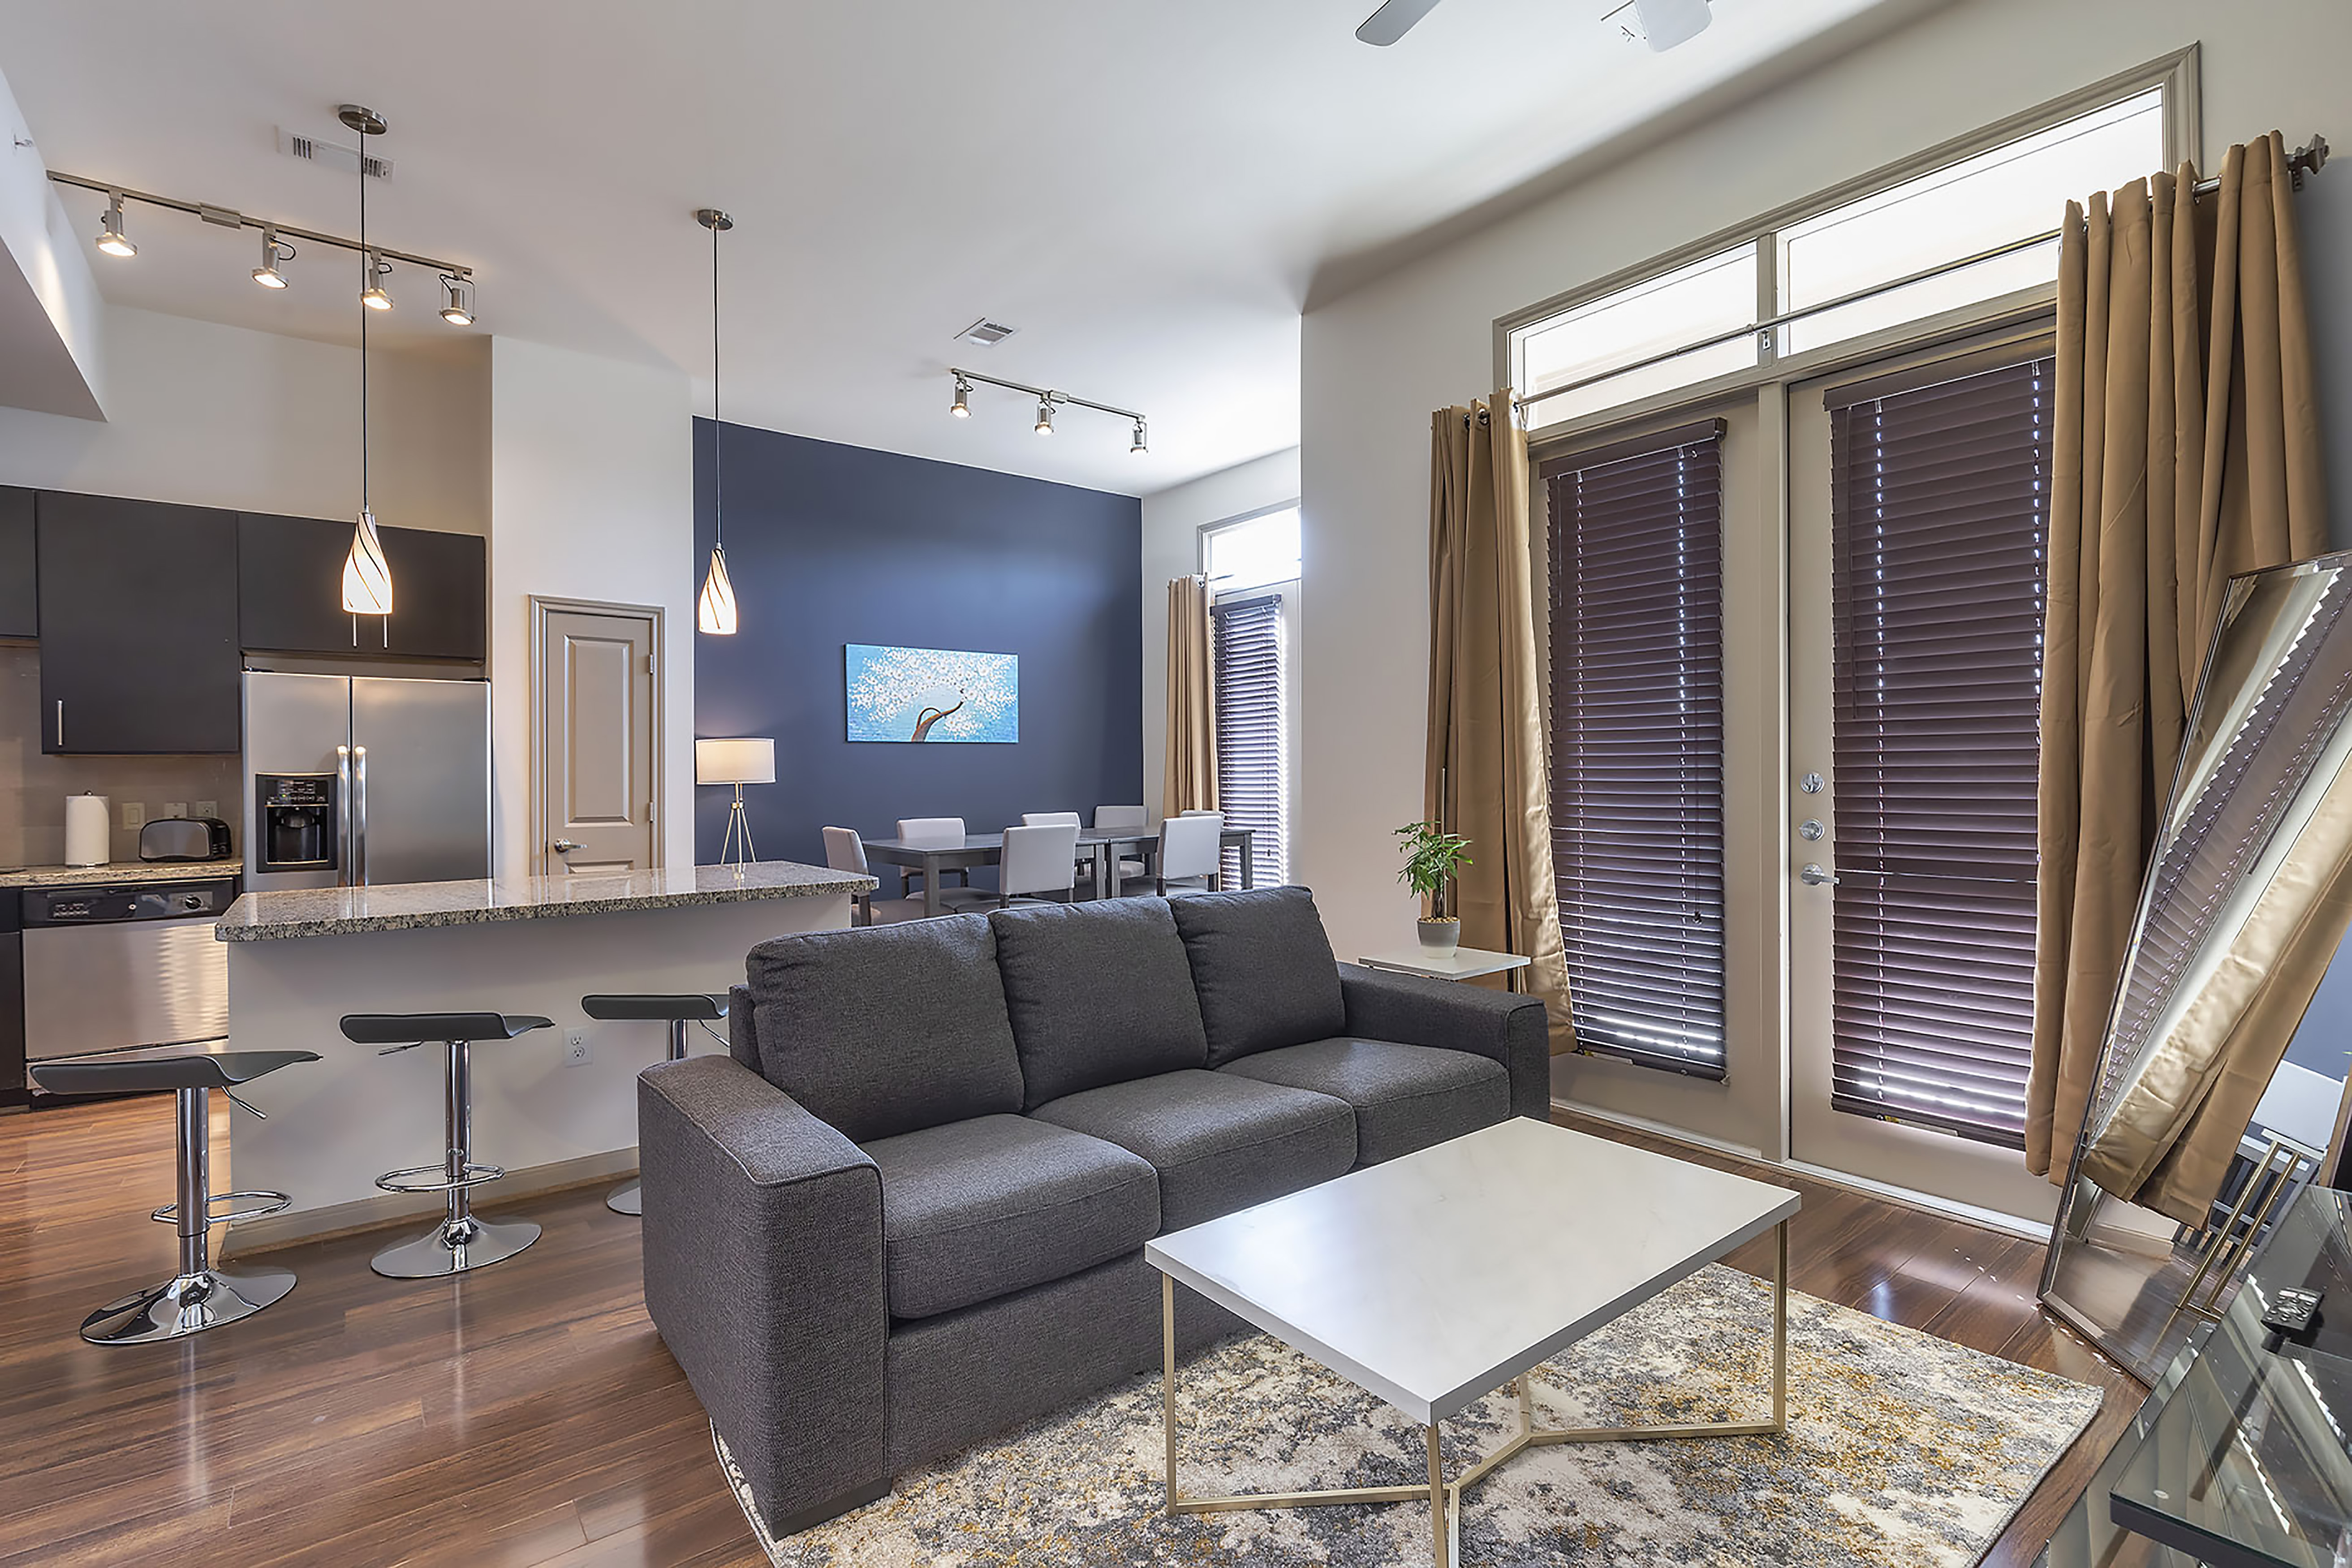 Apartment LUXURIOUS CALI KING BED MIDTOWN FULLY EQUIPPED CONDO -                 photo 21440906